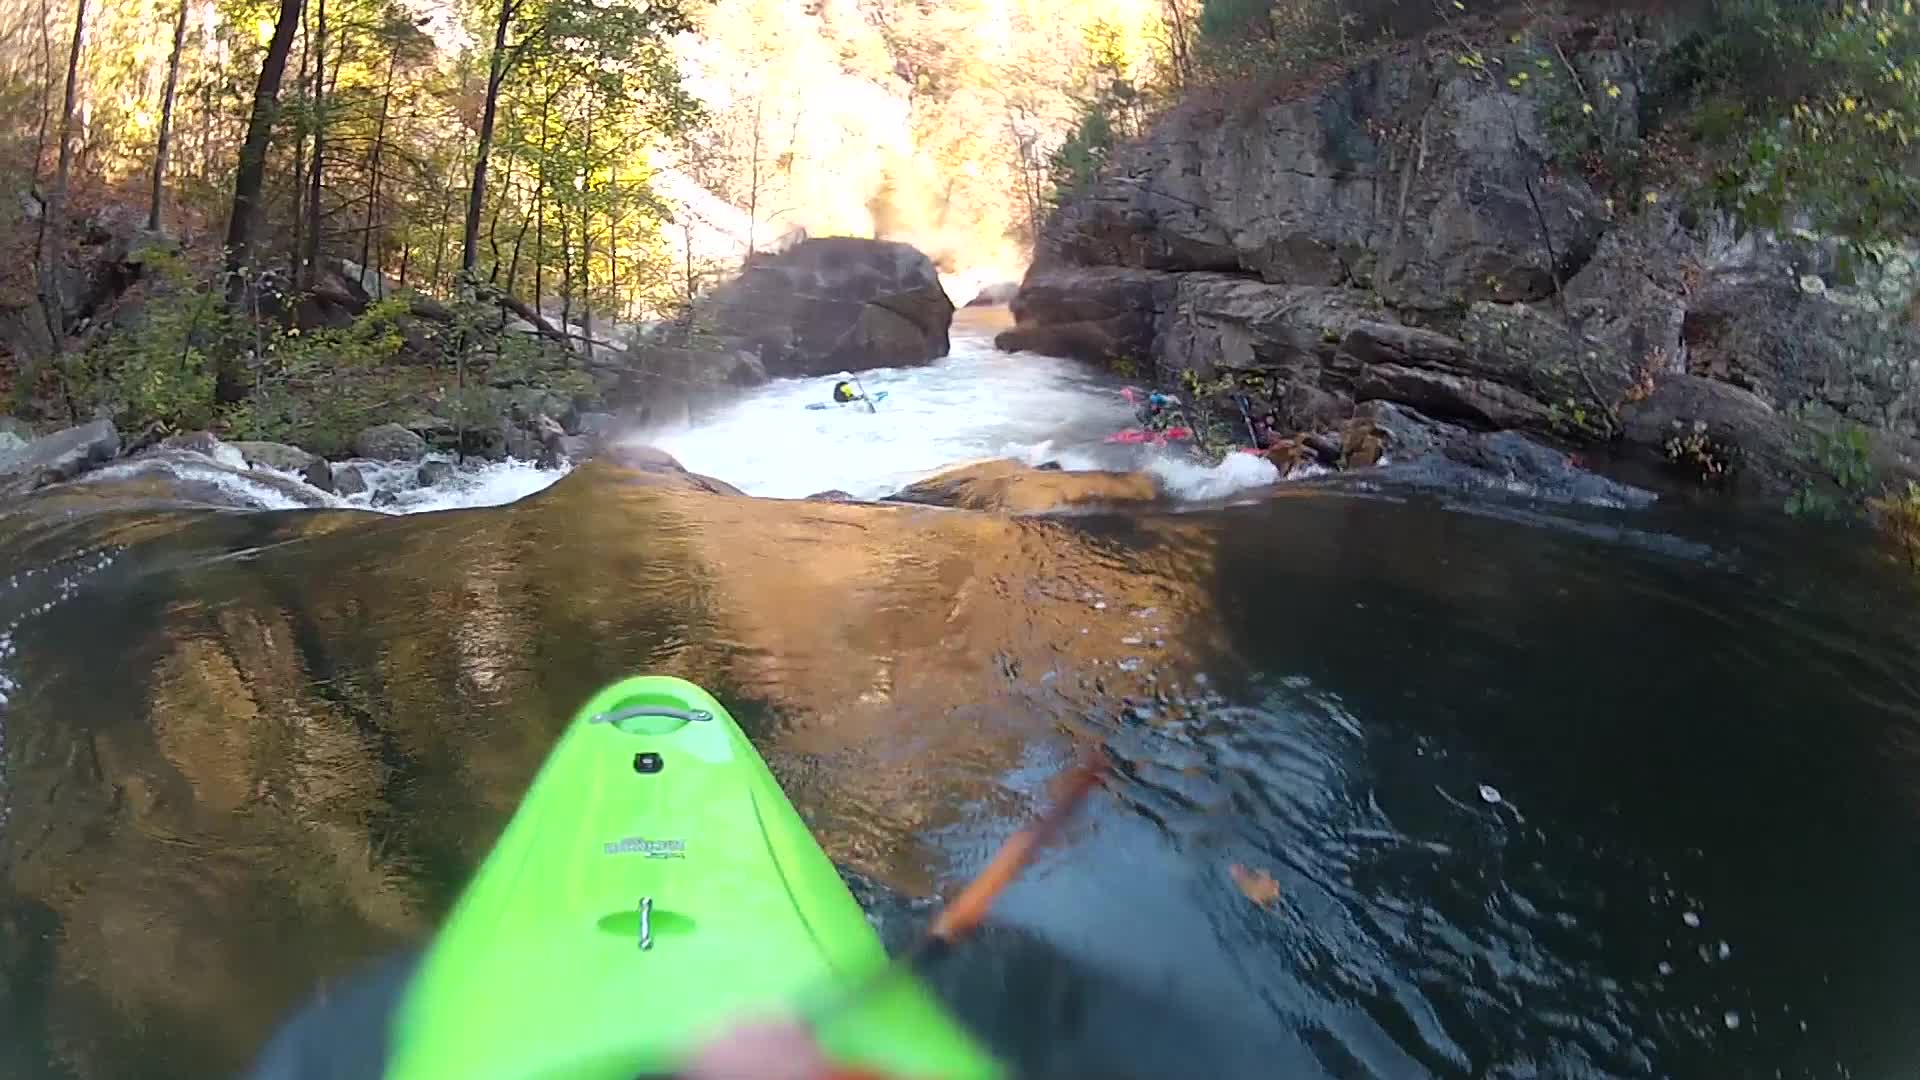 AdrenalinePorn, whitewater, Tanners boof/Oceana Tallulah gorge GIFs